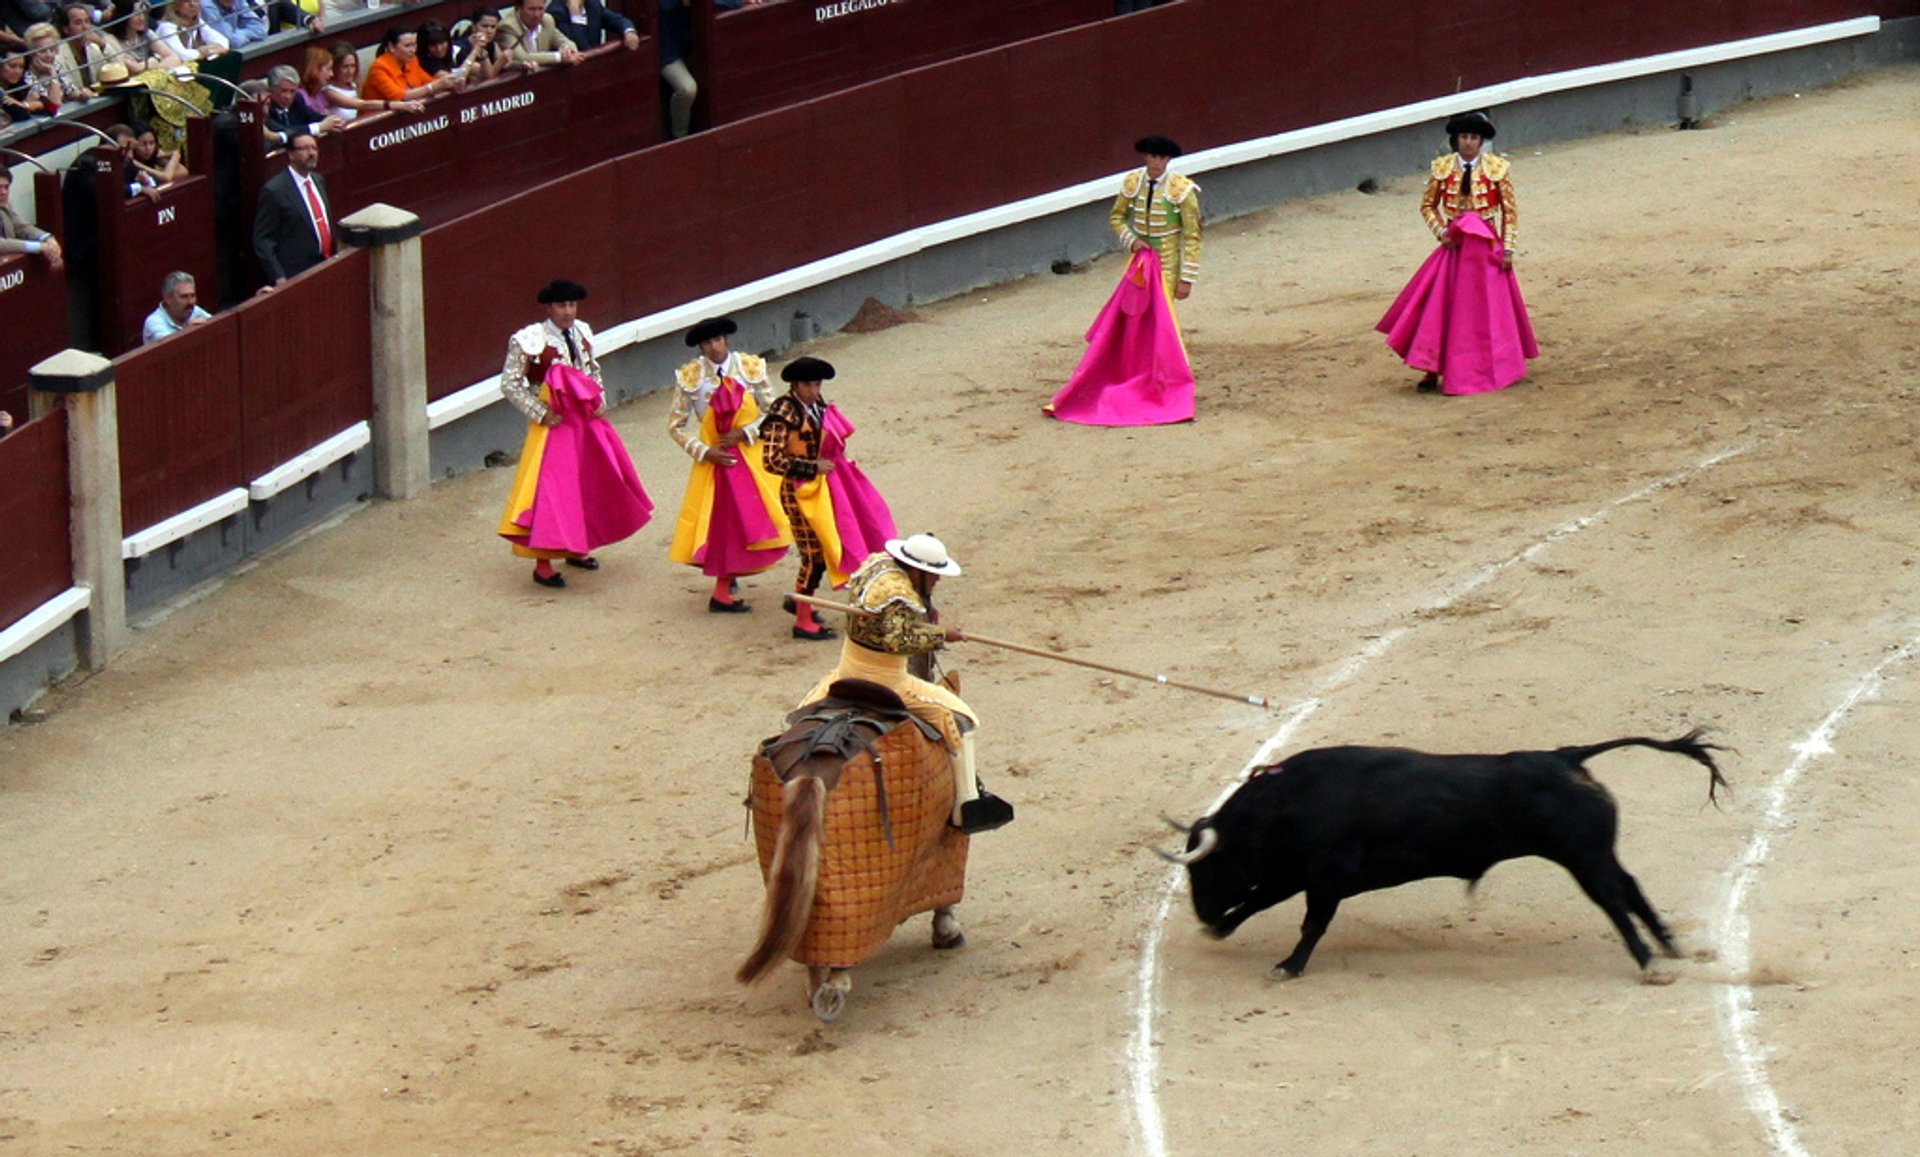 Bullfighting Season in Spain 2020 - Best Time